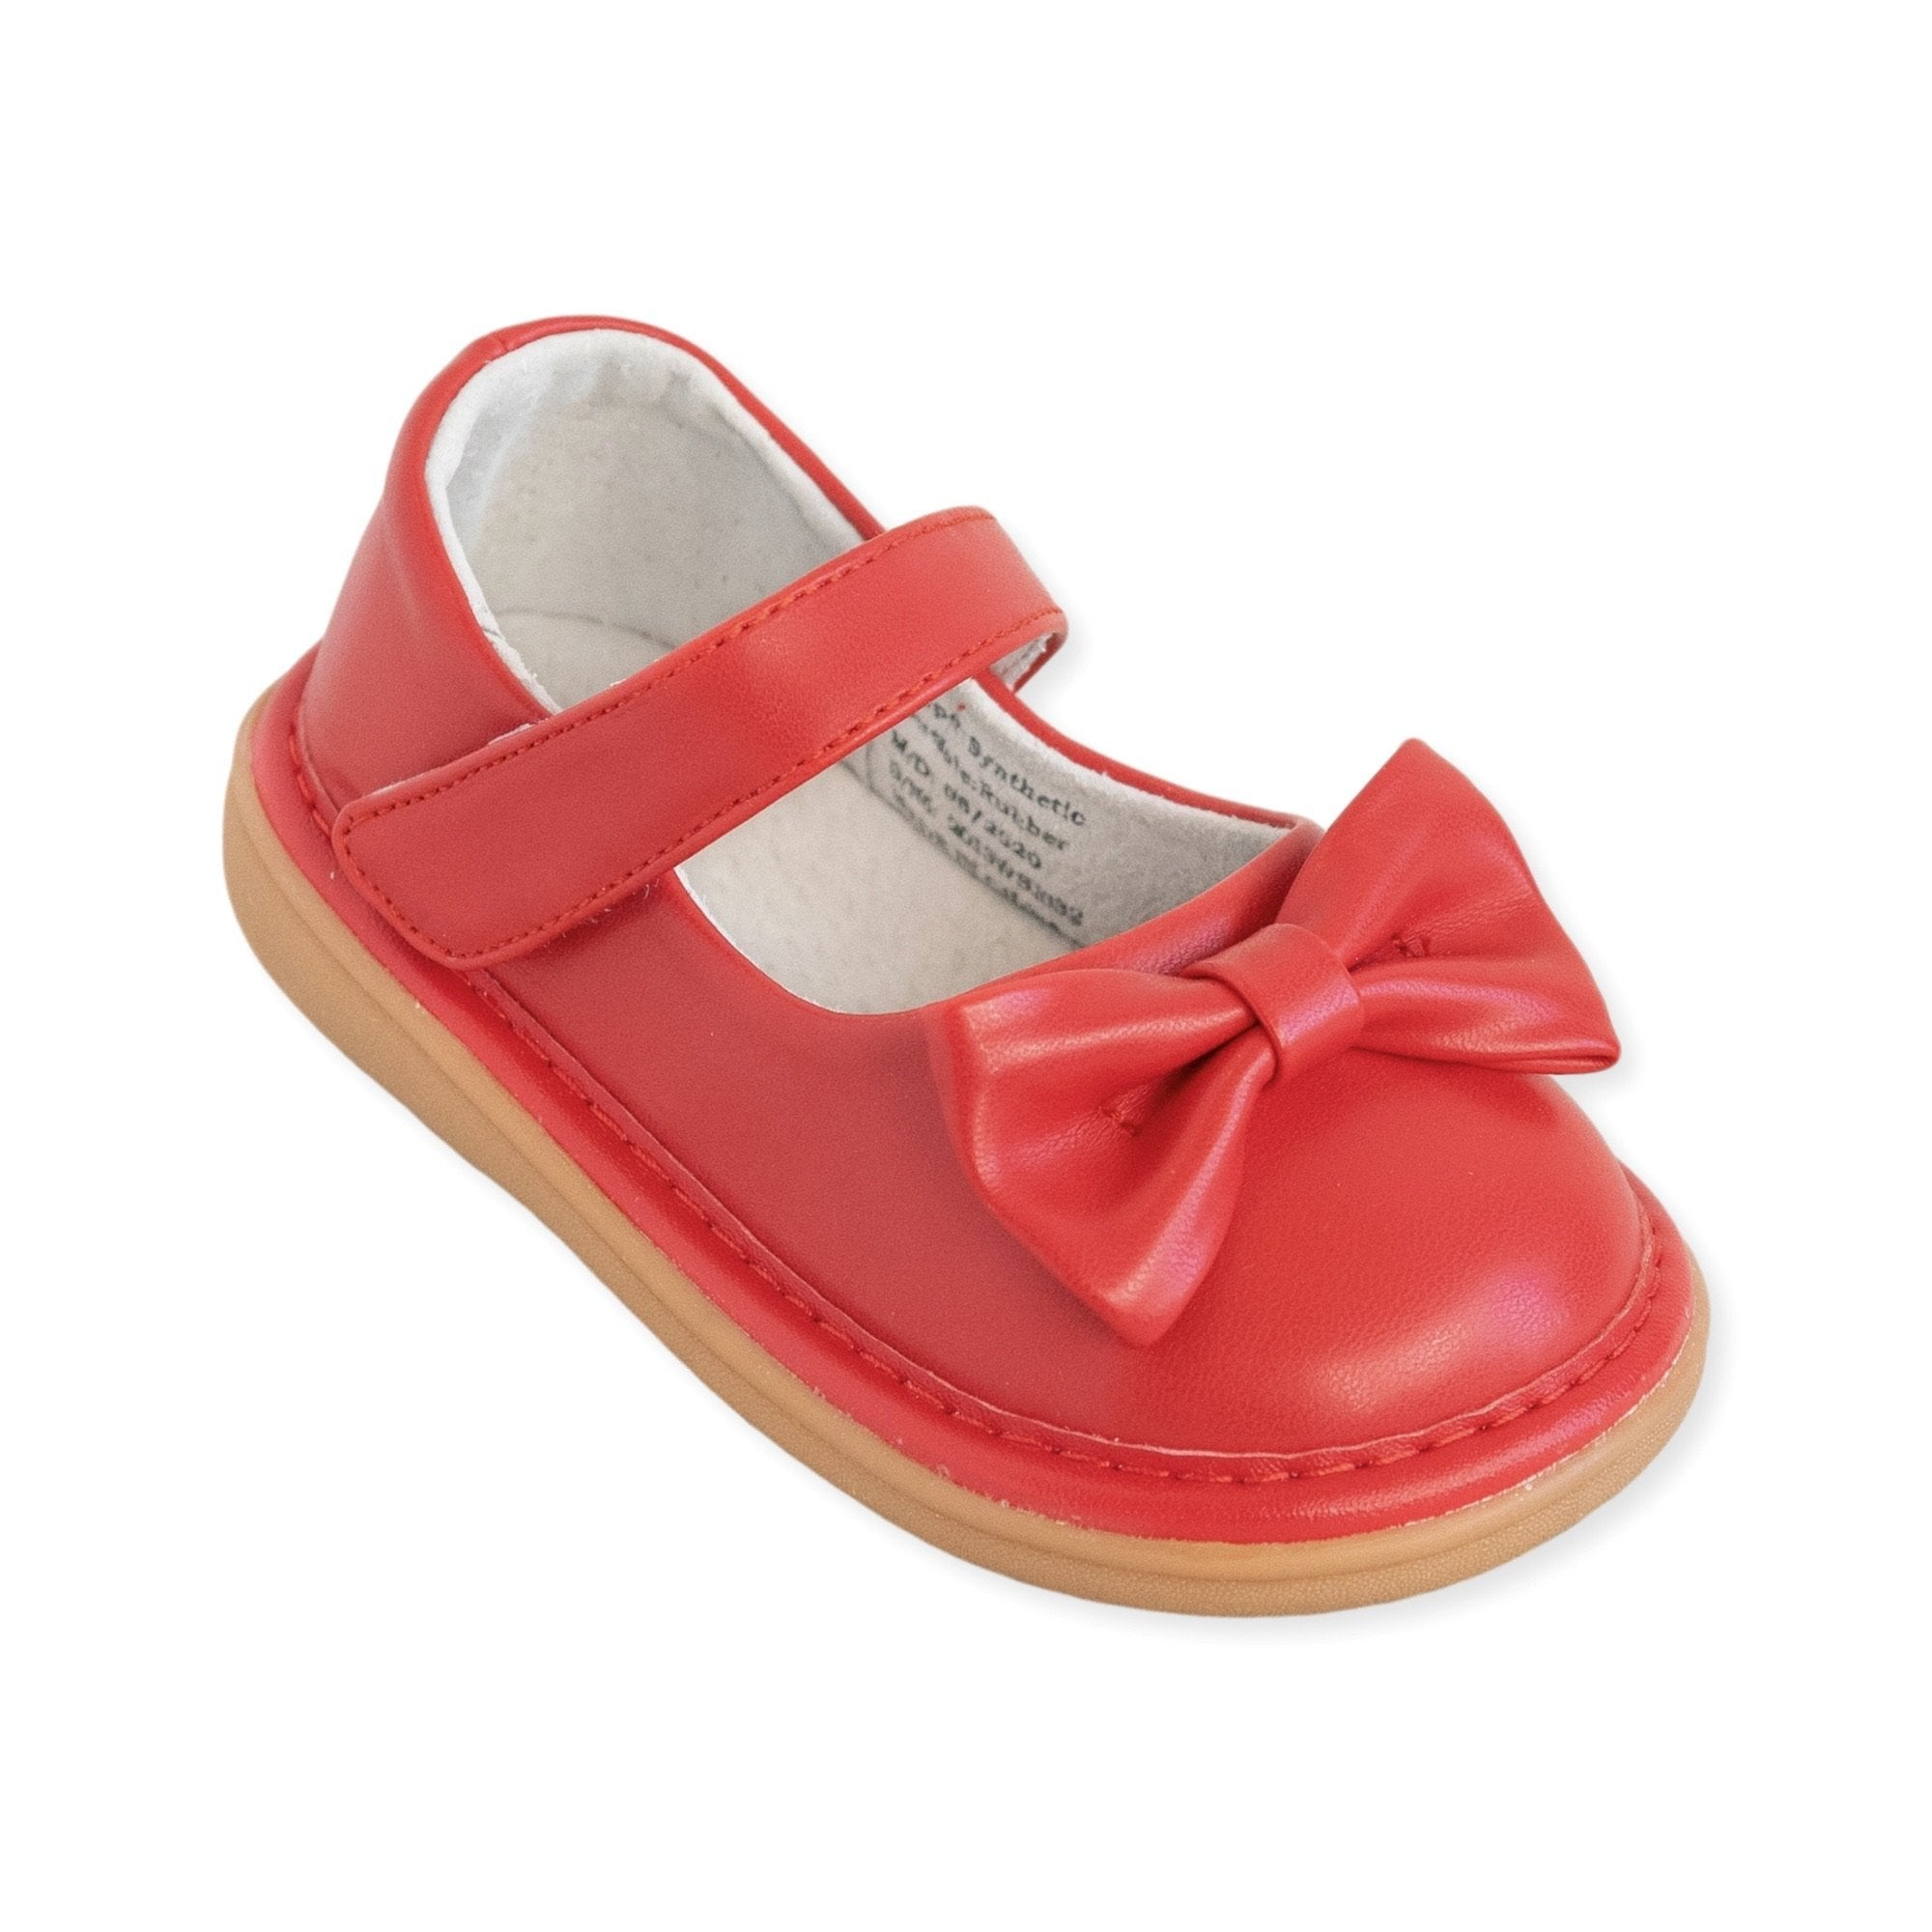 Bow Red Shoe - Wee Squeak